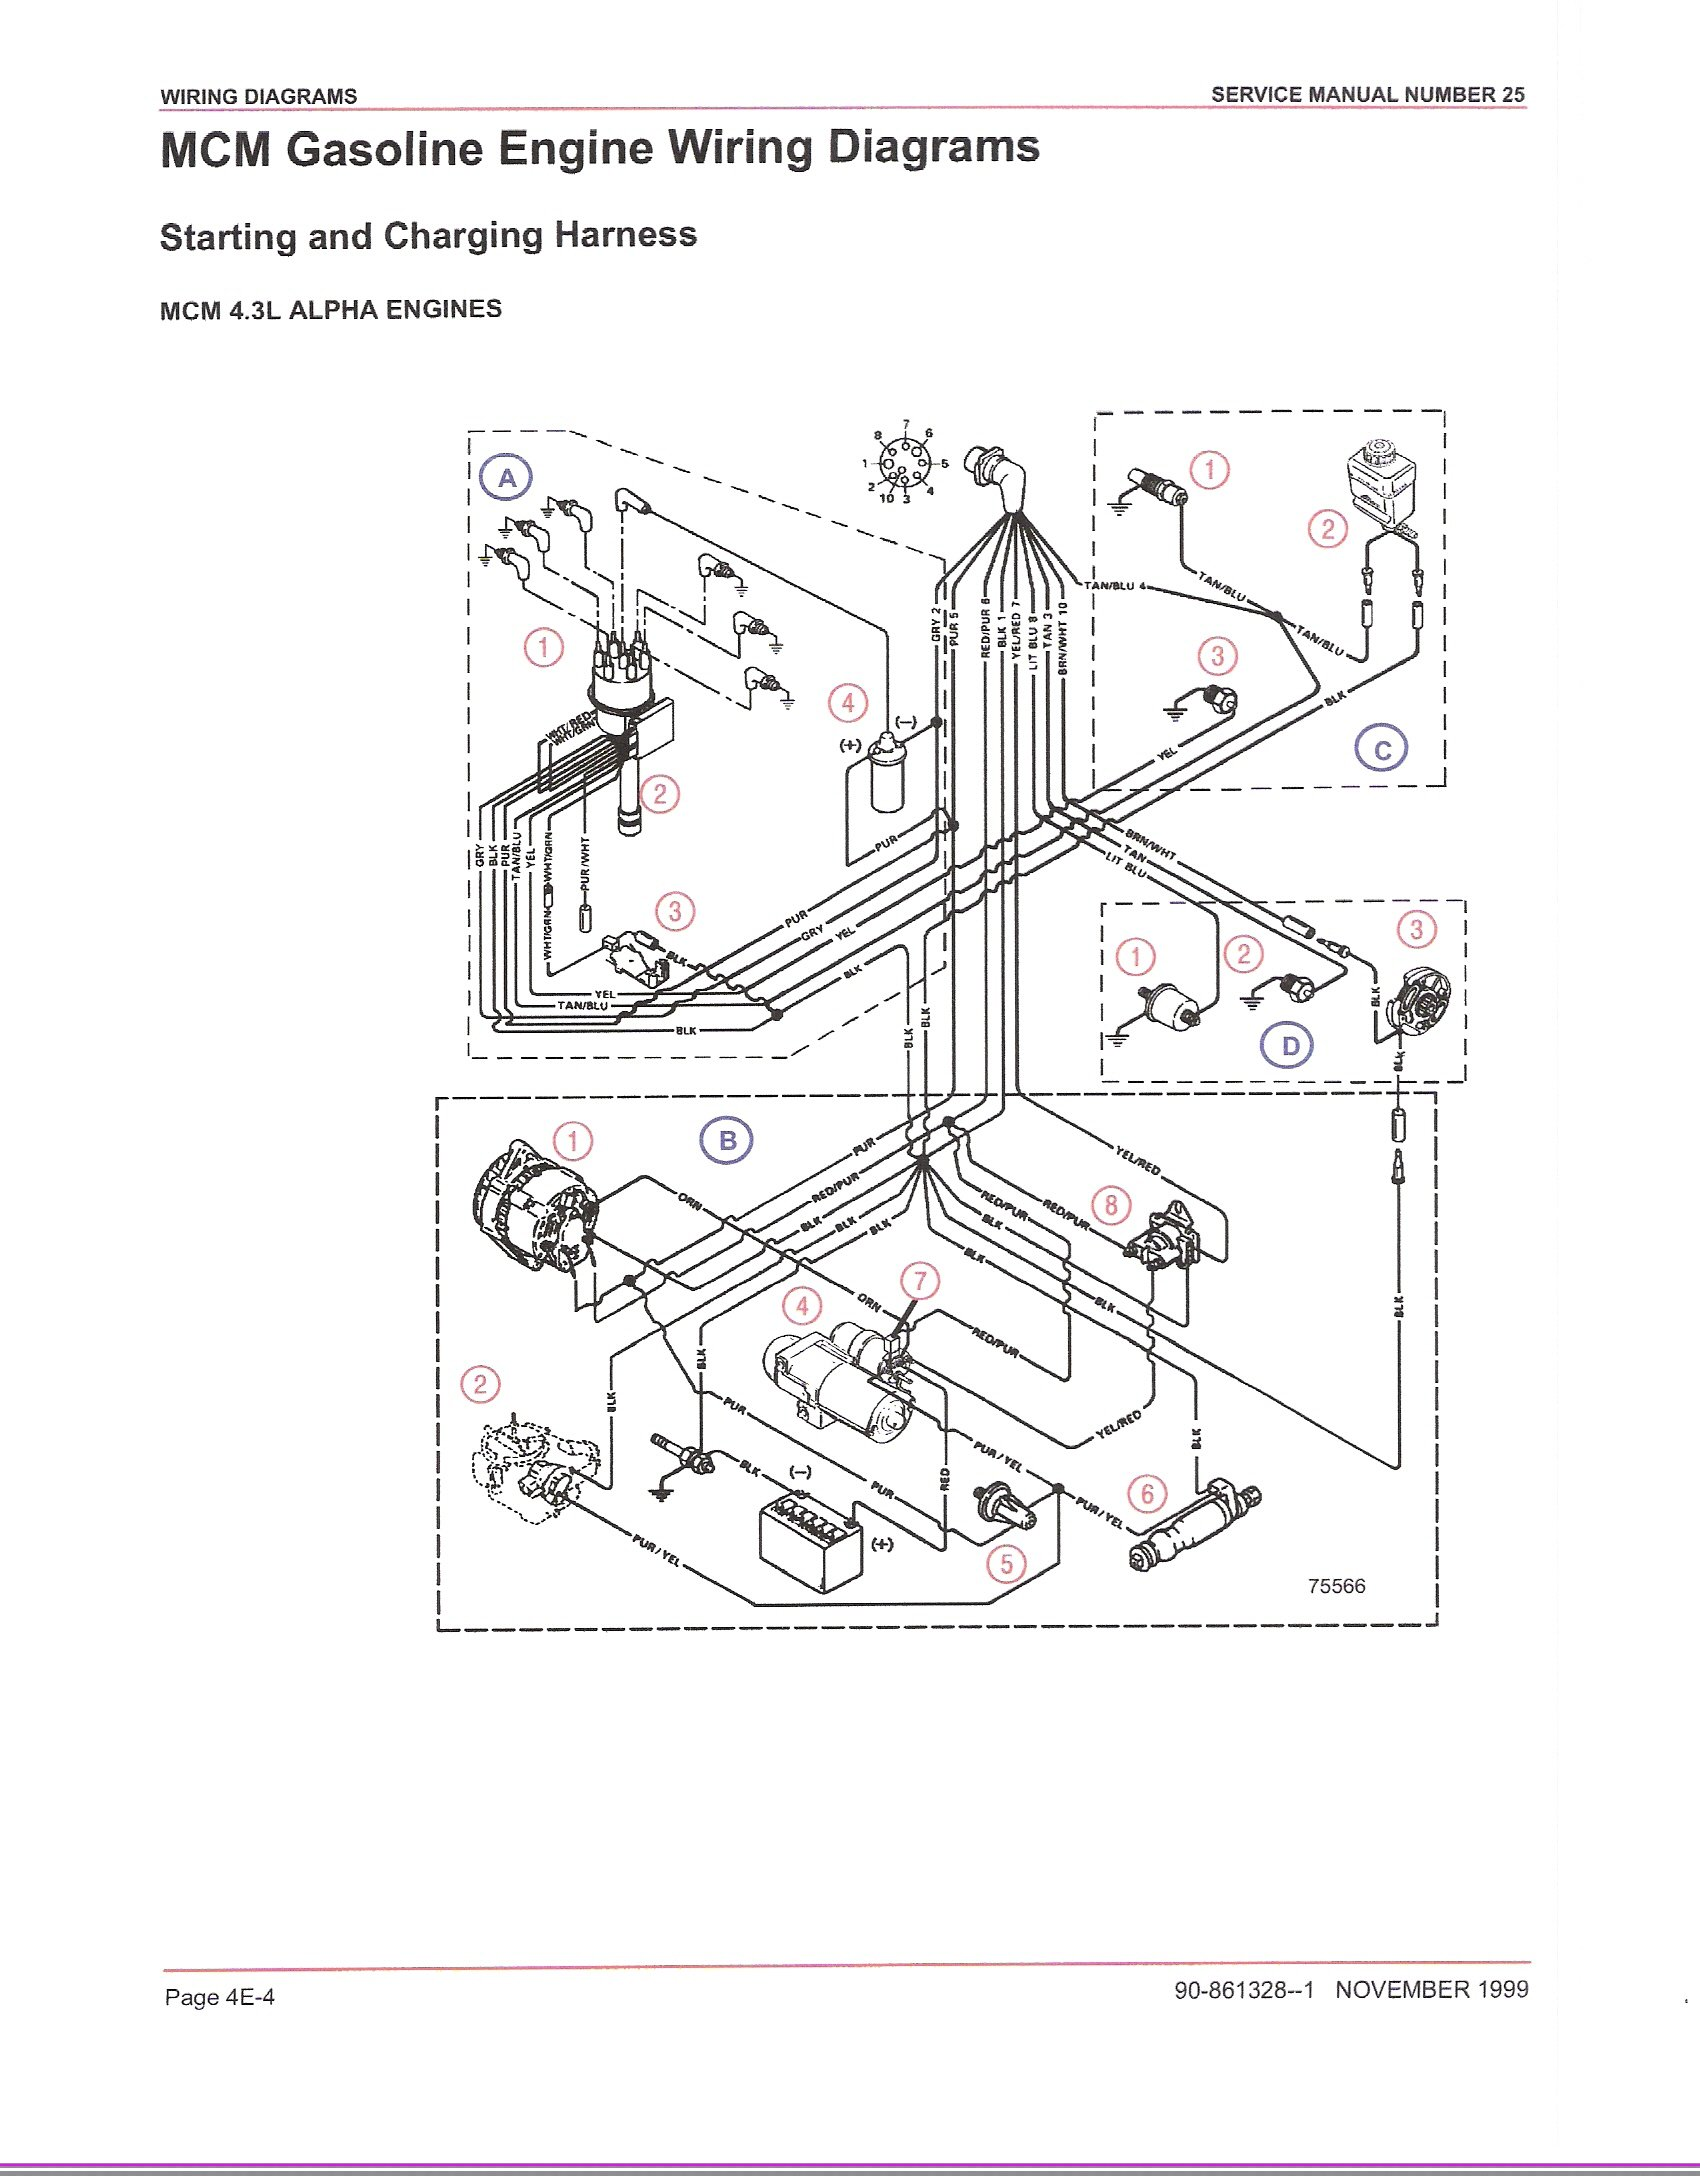 165 mercruiser ignition switch diagram html imageresizertool com Mercruiser 3.7 Cooling Diagram Mercruiser Ignition Wiring Diagram